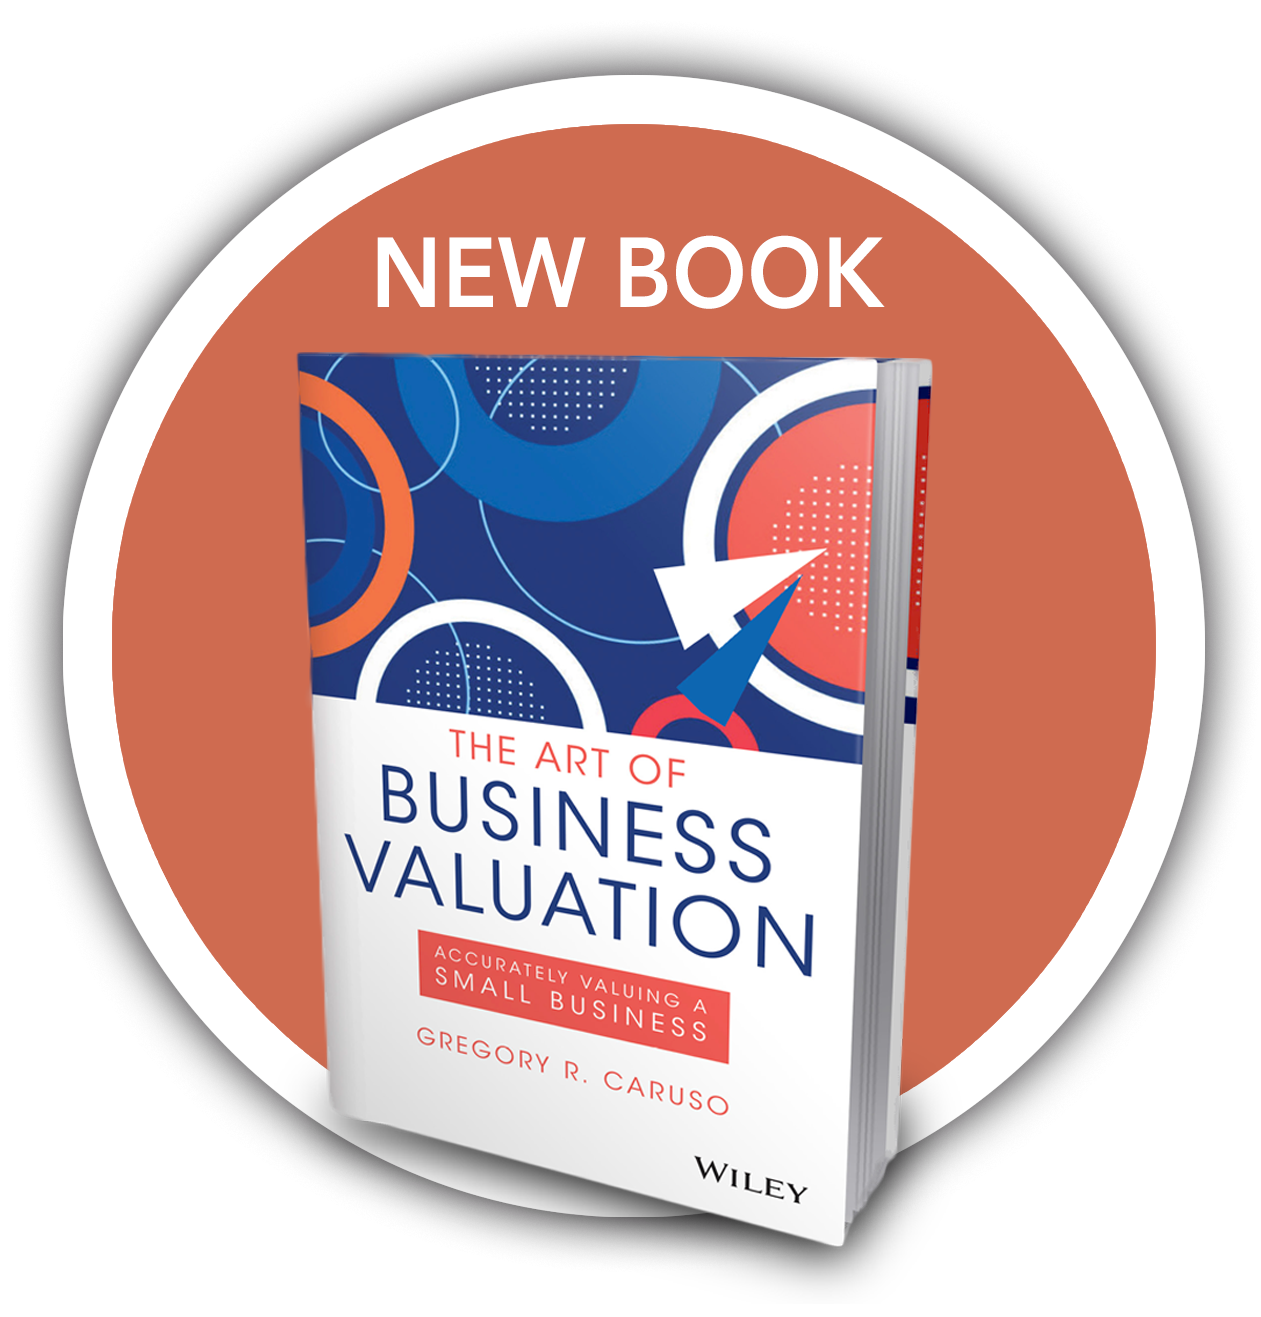 The Art of Business Valuation Accurately Valuing a Small Business book cover